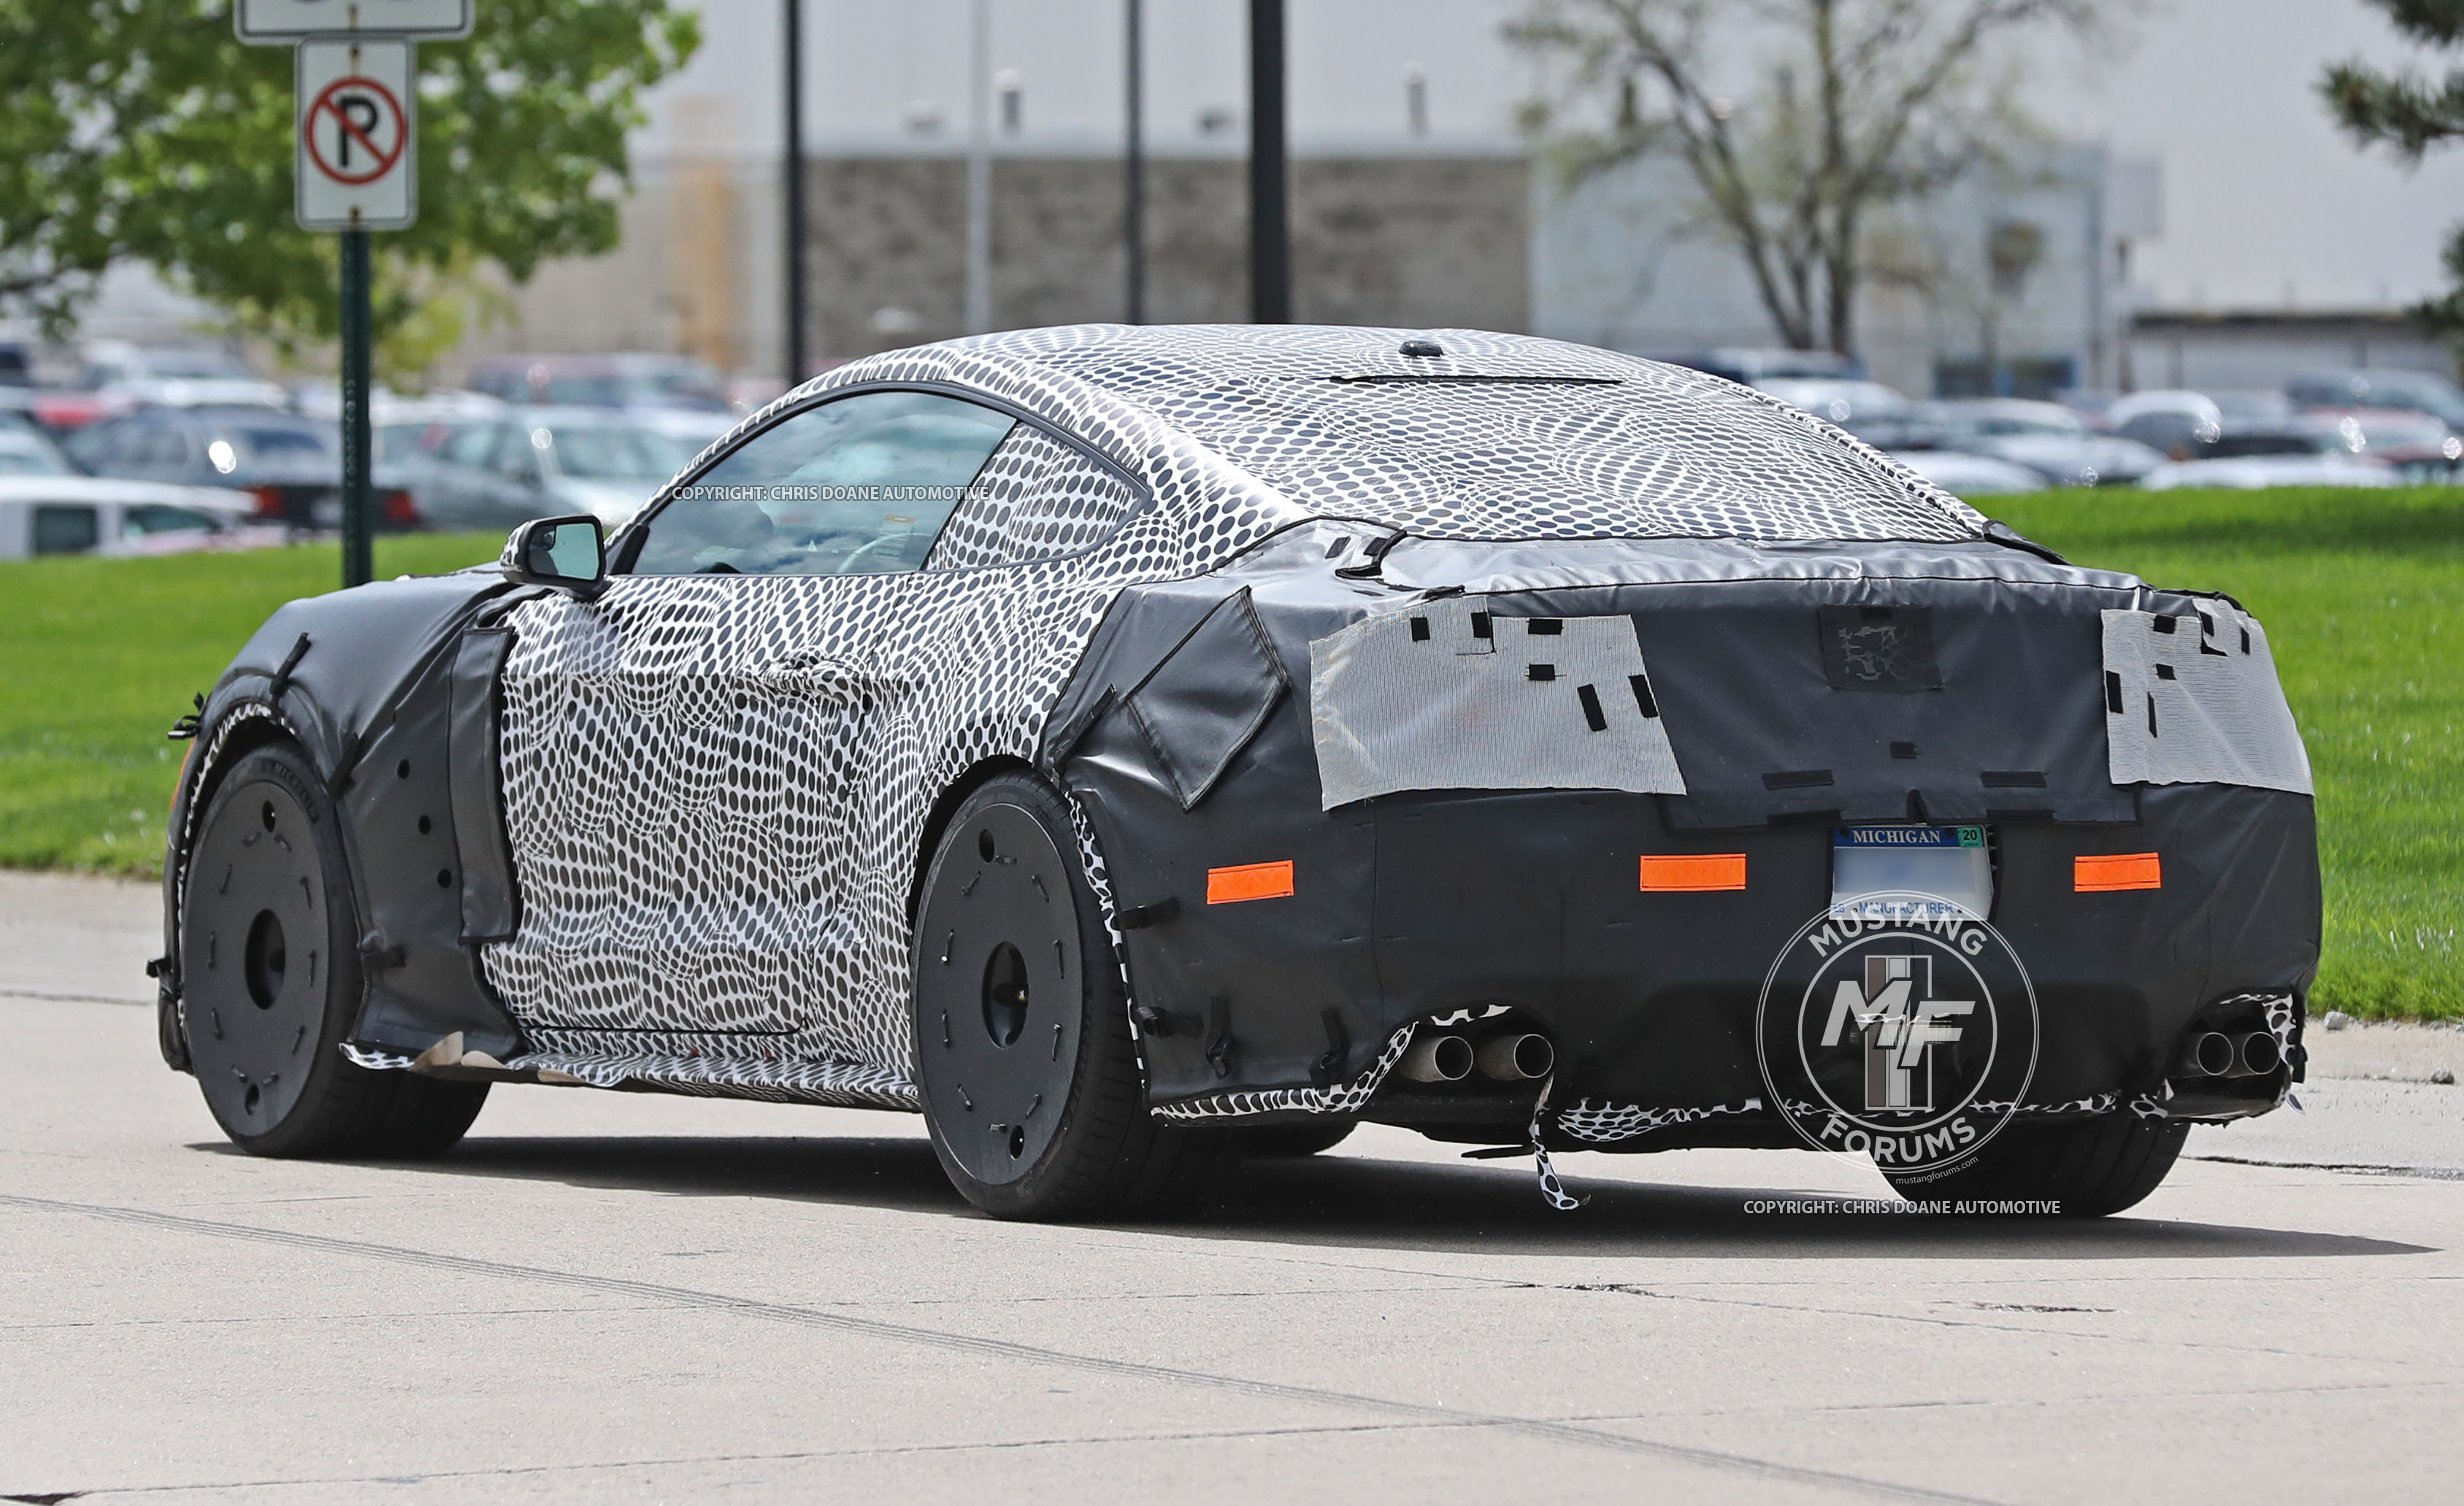 2019 ford mustang shelby gt500 spy shots 4  mustangforums